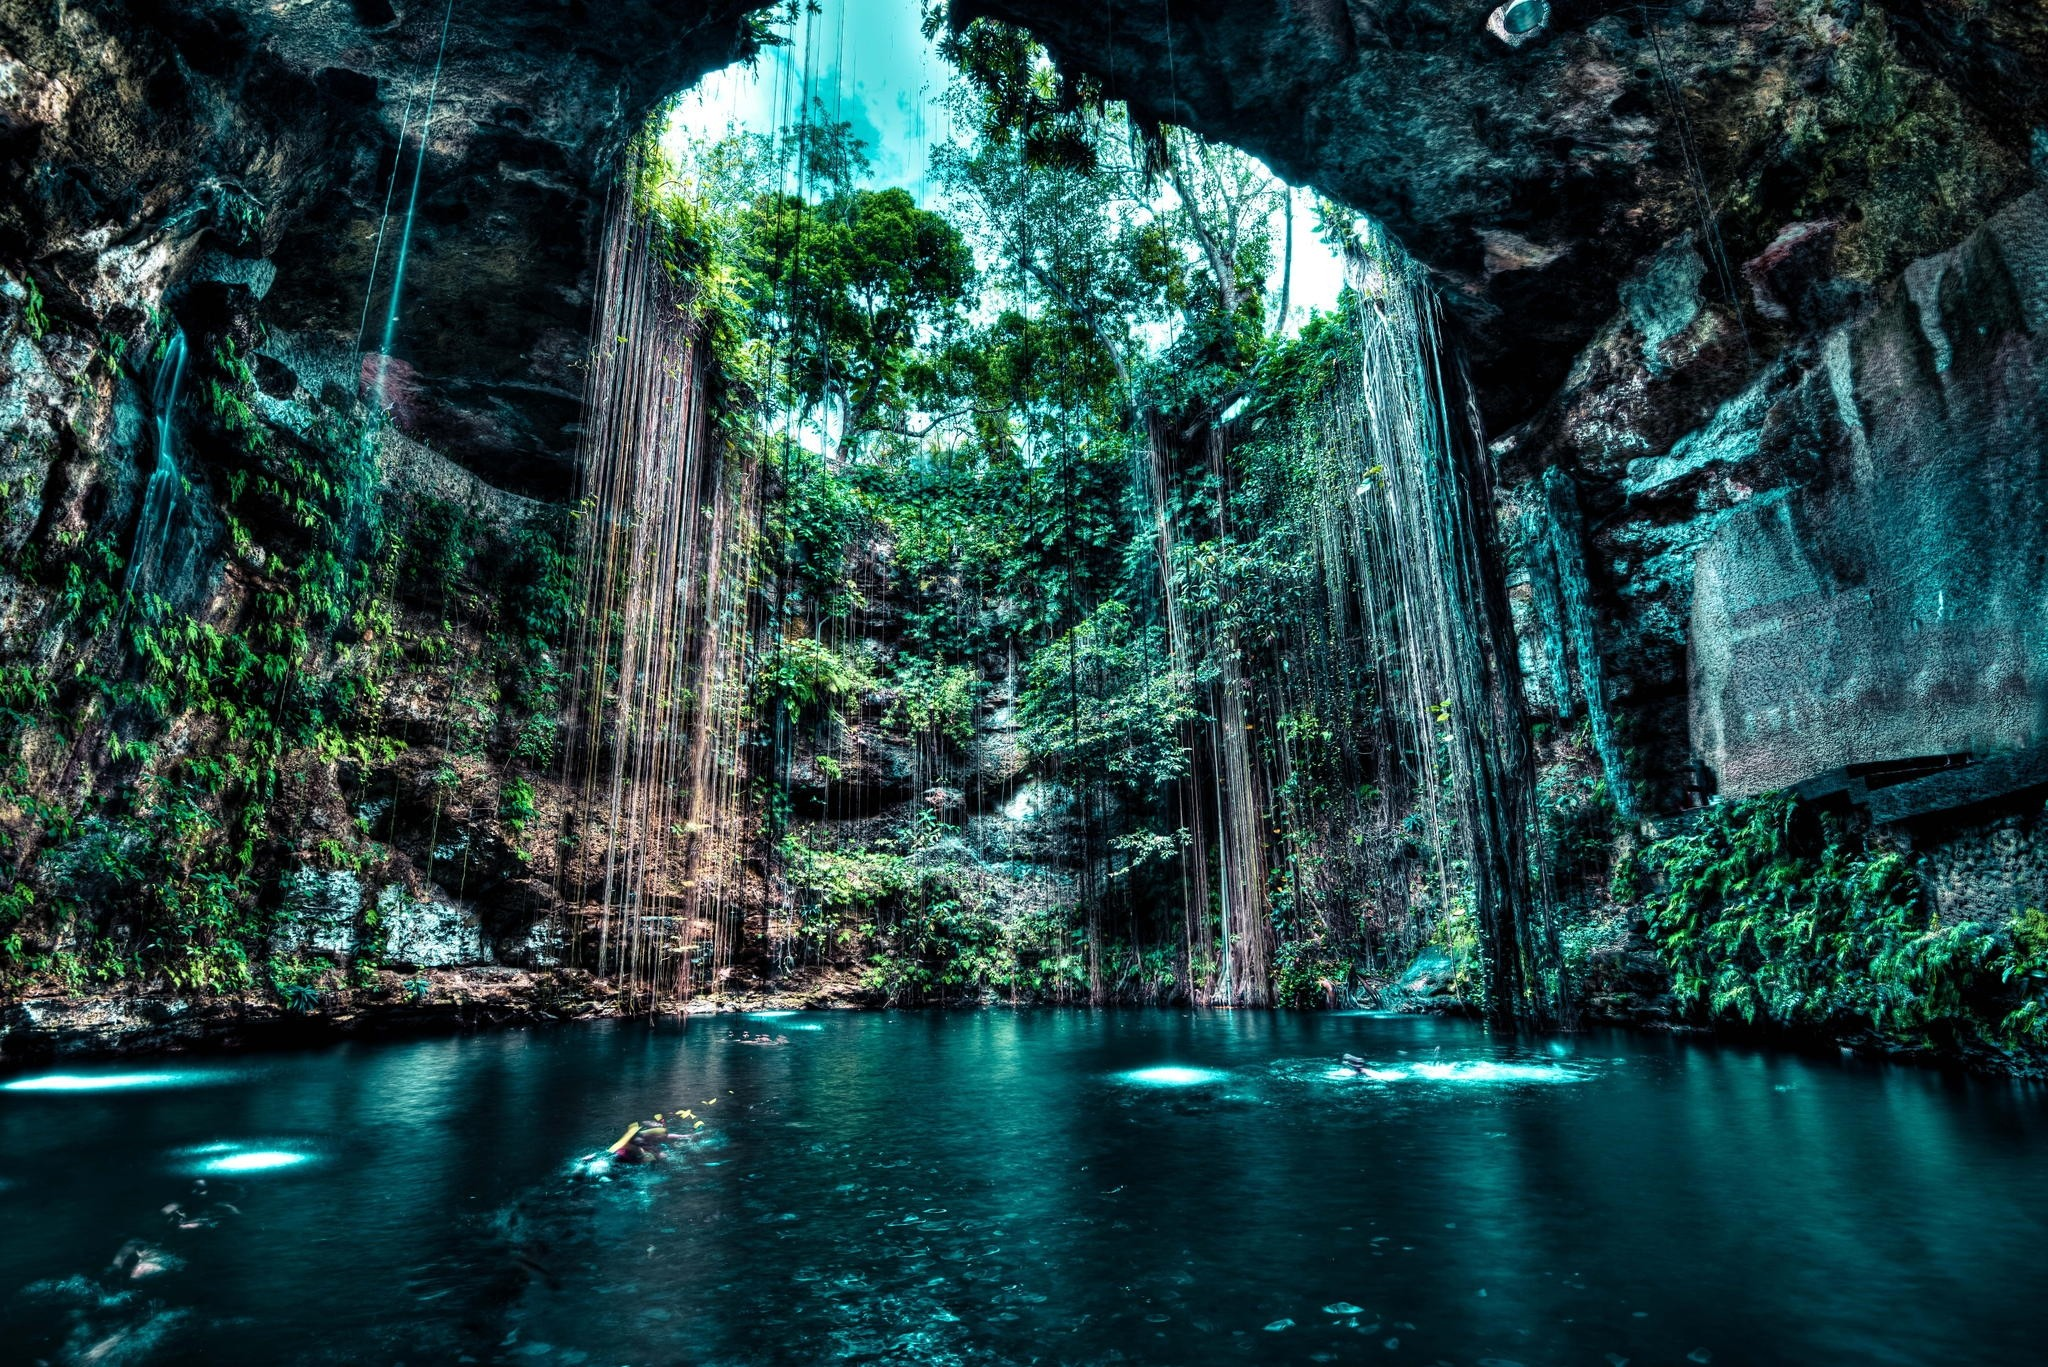 Cave wallpapers pictures images - Nature ke wallpaper ...